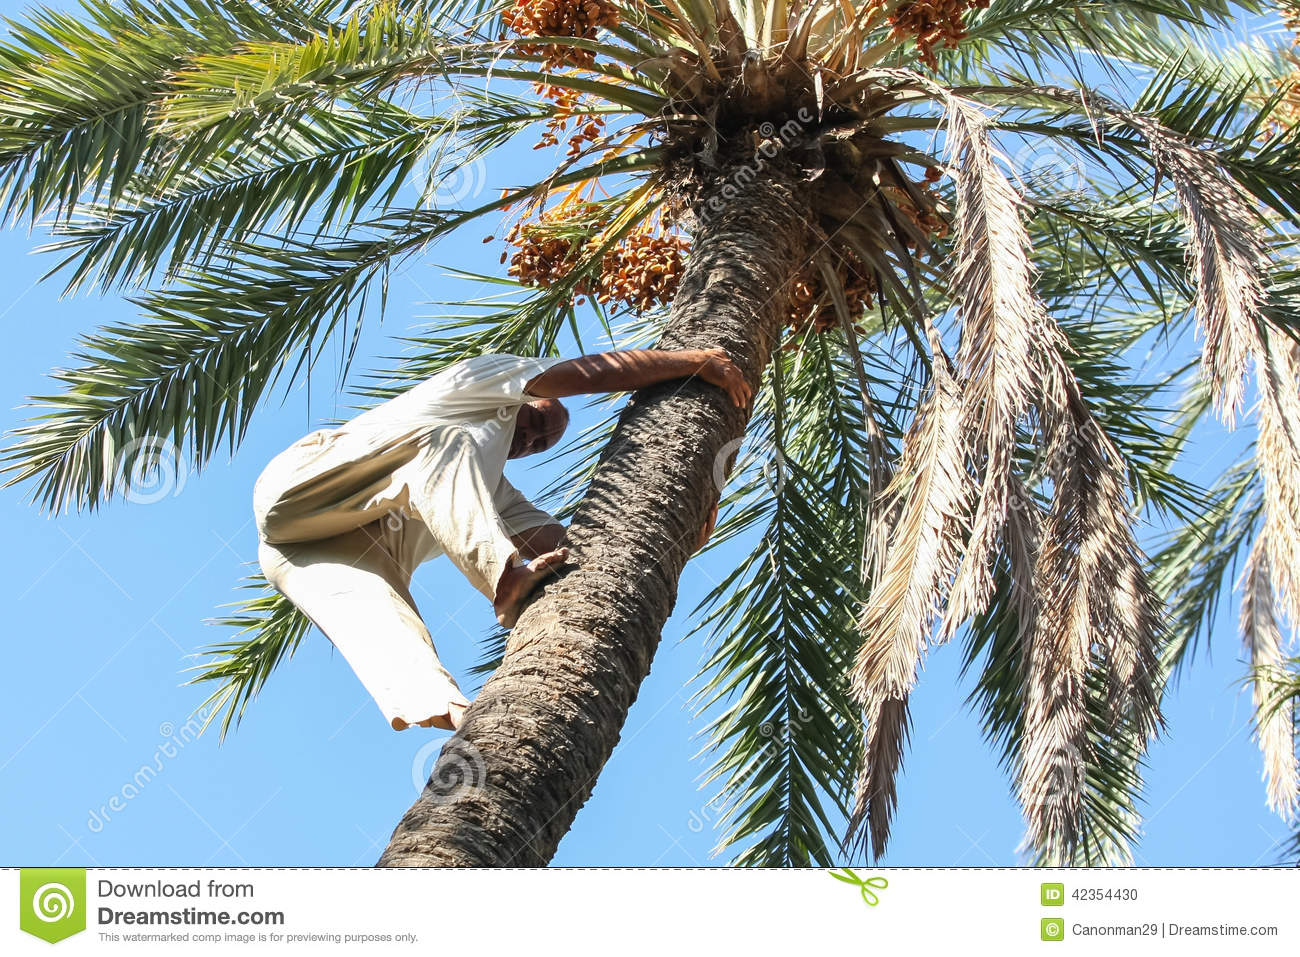 dating ancient trees The palm tree: palm sunday 21 feb palm trees in ancient desert sands grew and satisfied almost every need the ancient jews needed  the ancient date palm tree,.